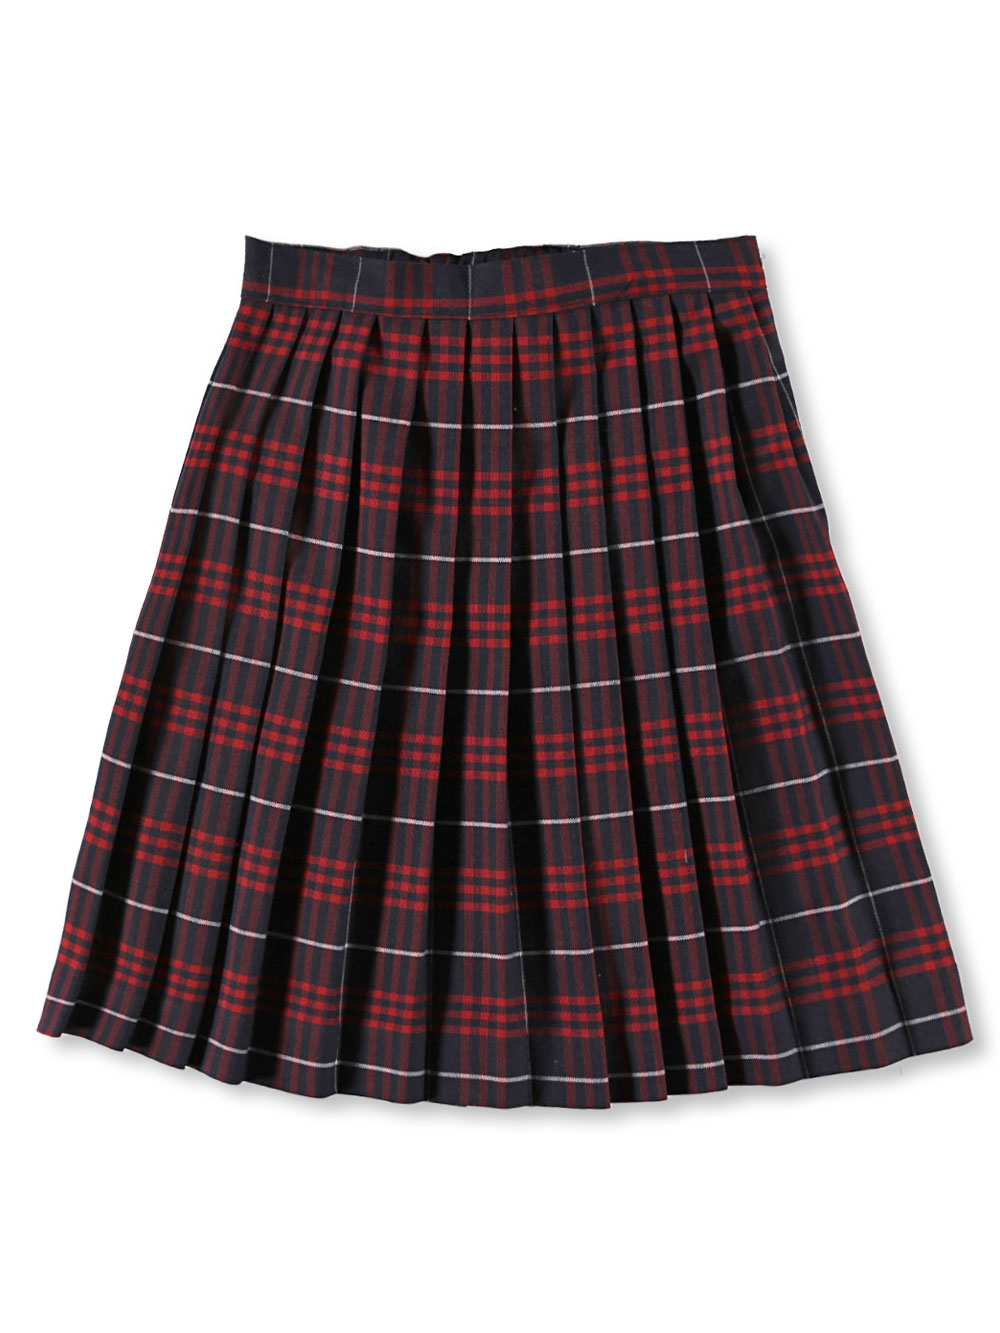 Big Girls' Pleated Skirt